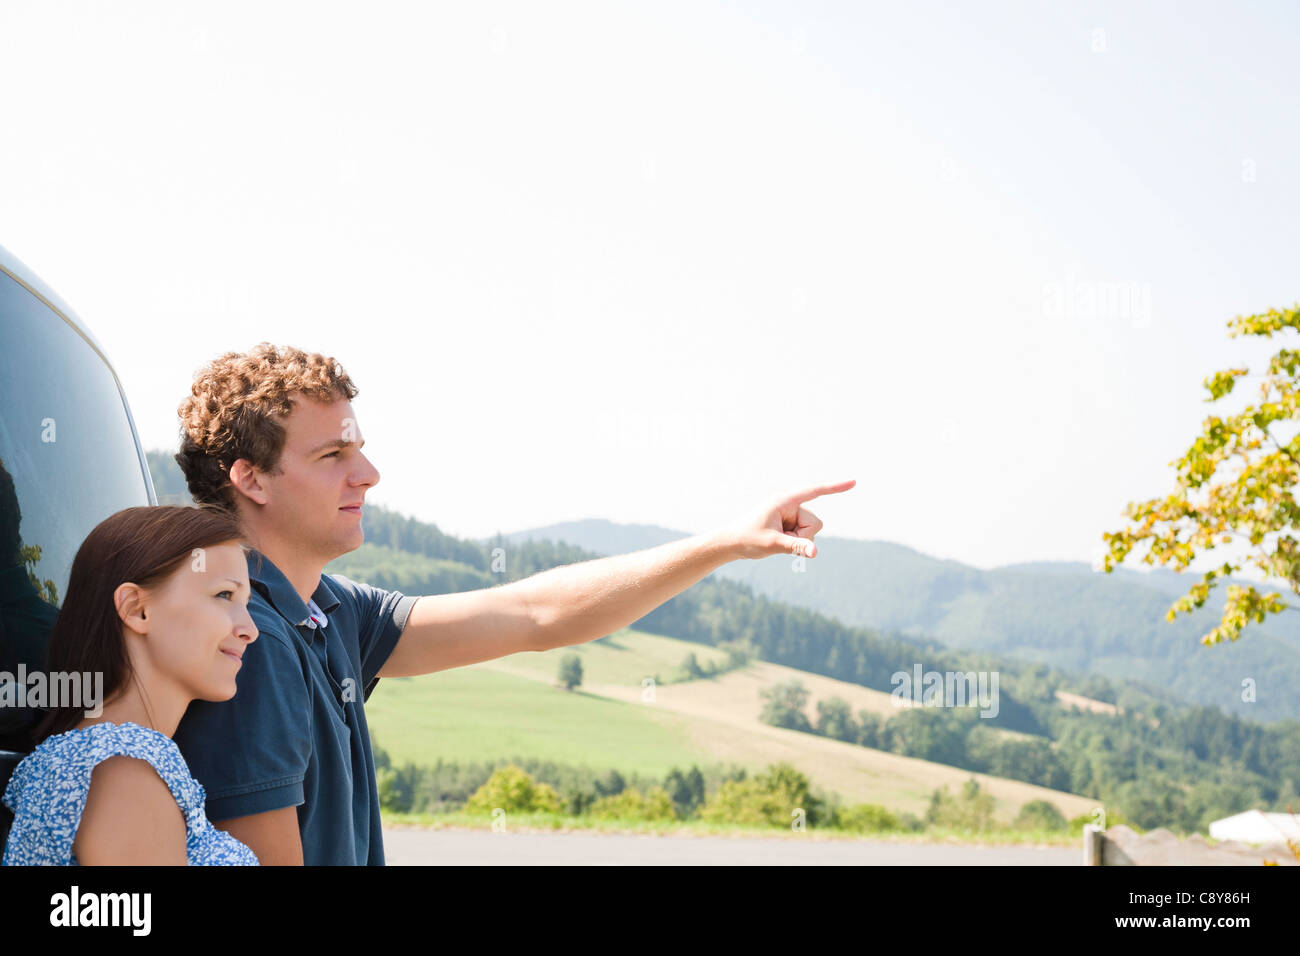 portrait of young couple on a road trip - Stock Image